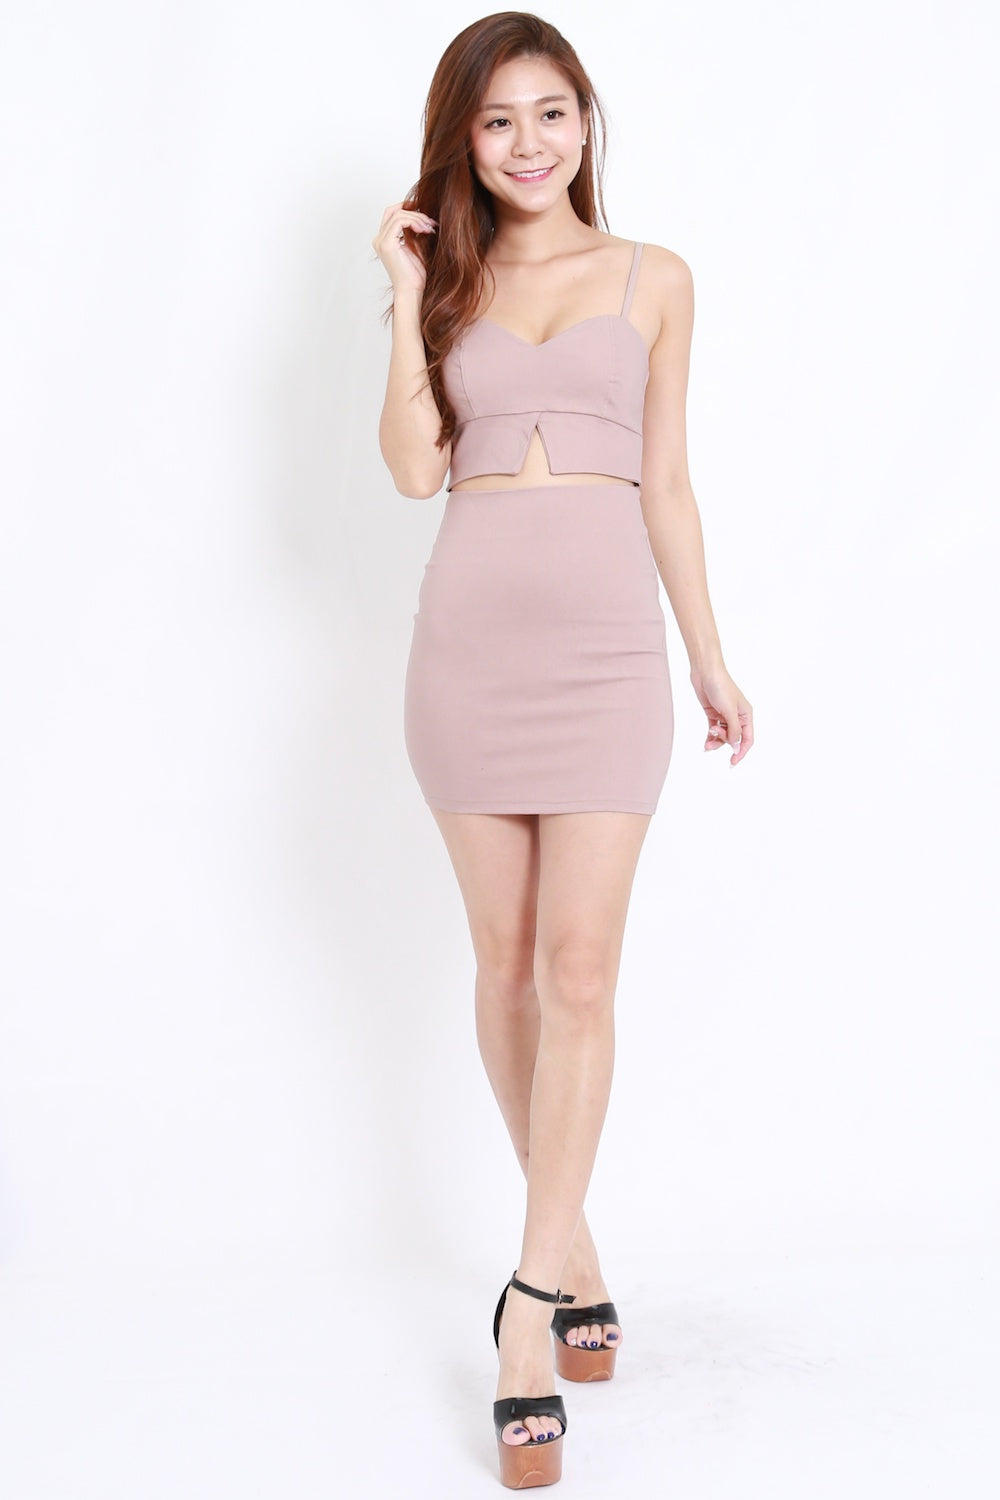 ae72e3c244 Cutout Bralet Spag Dress (Nude) – Carrislabelle